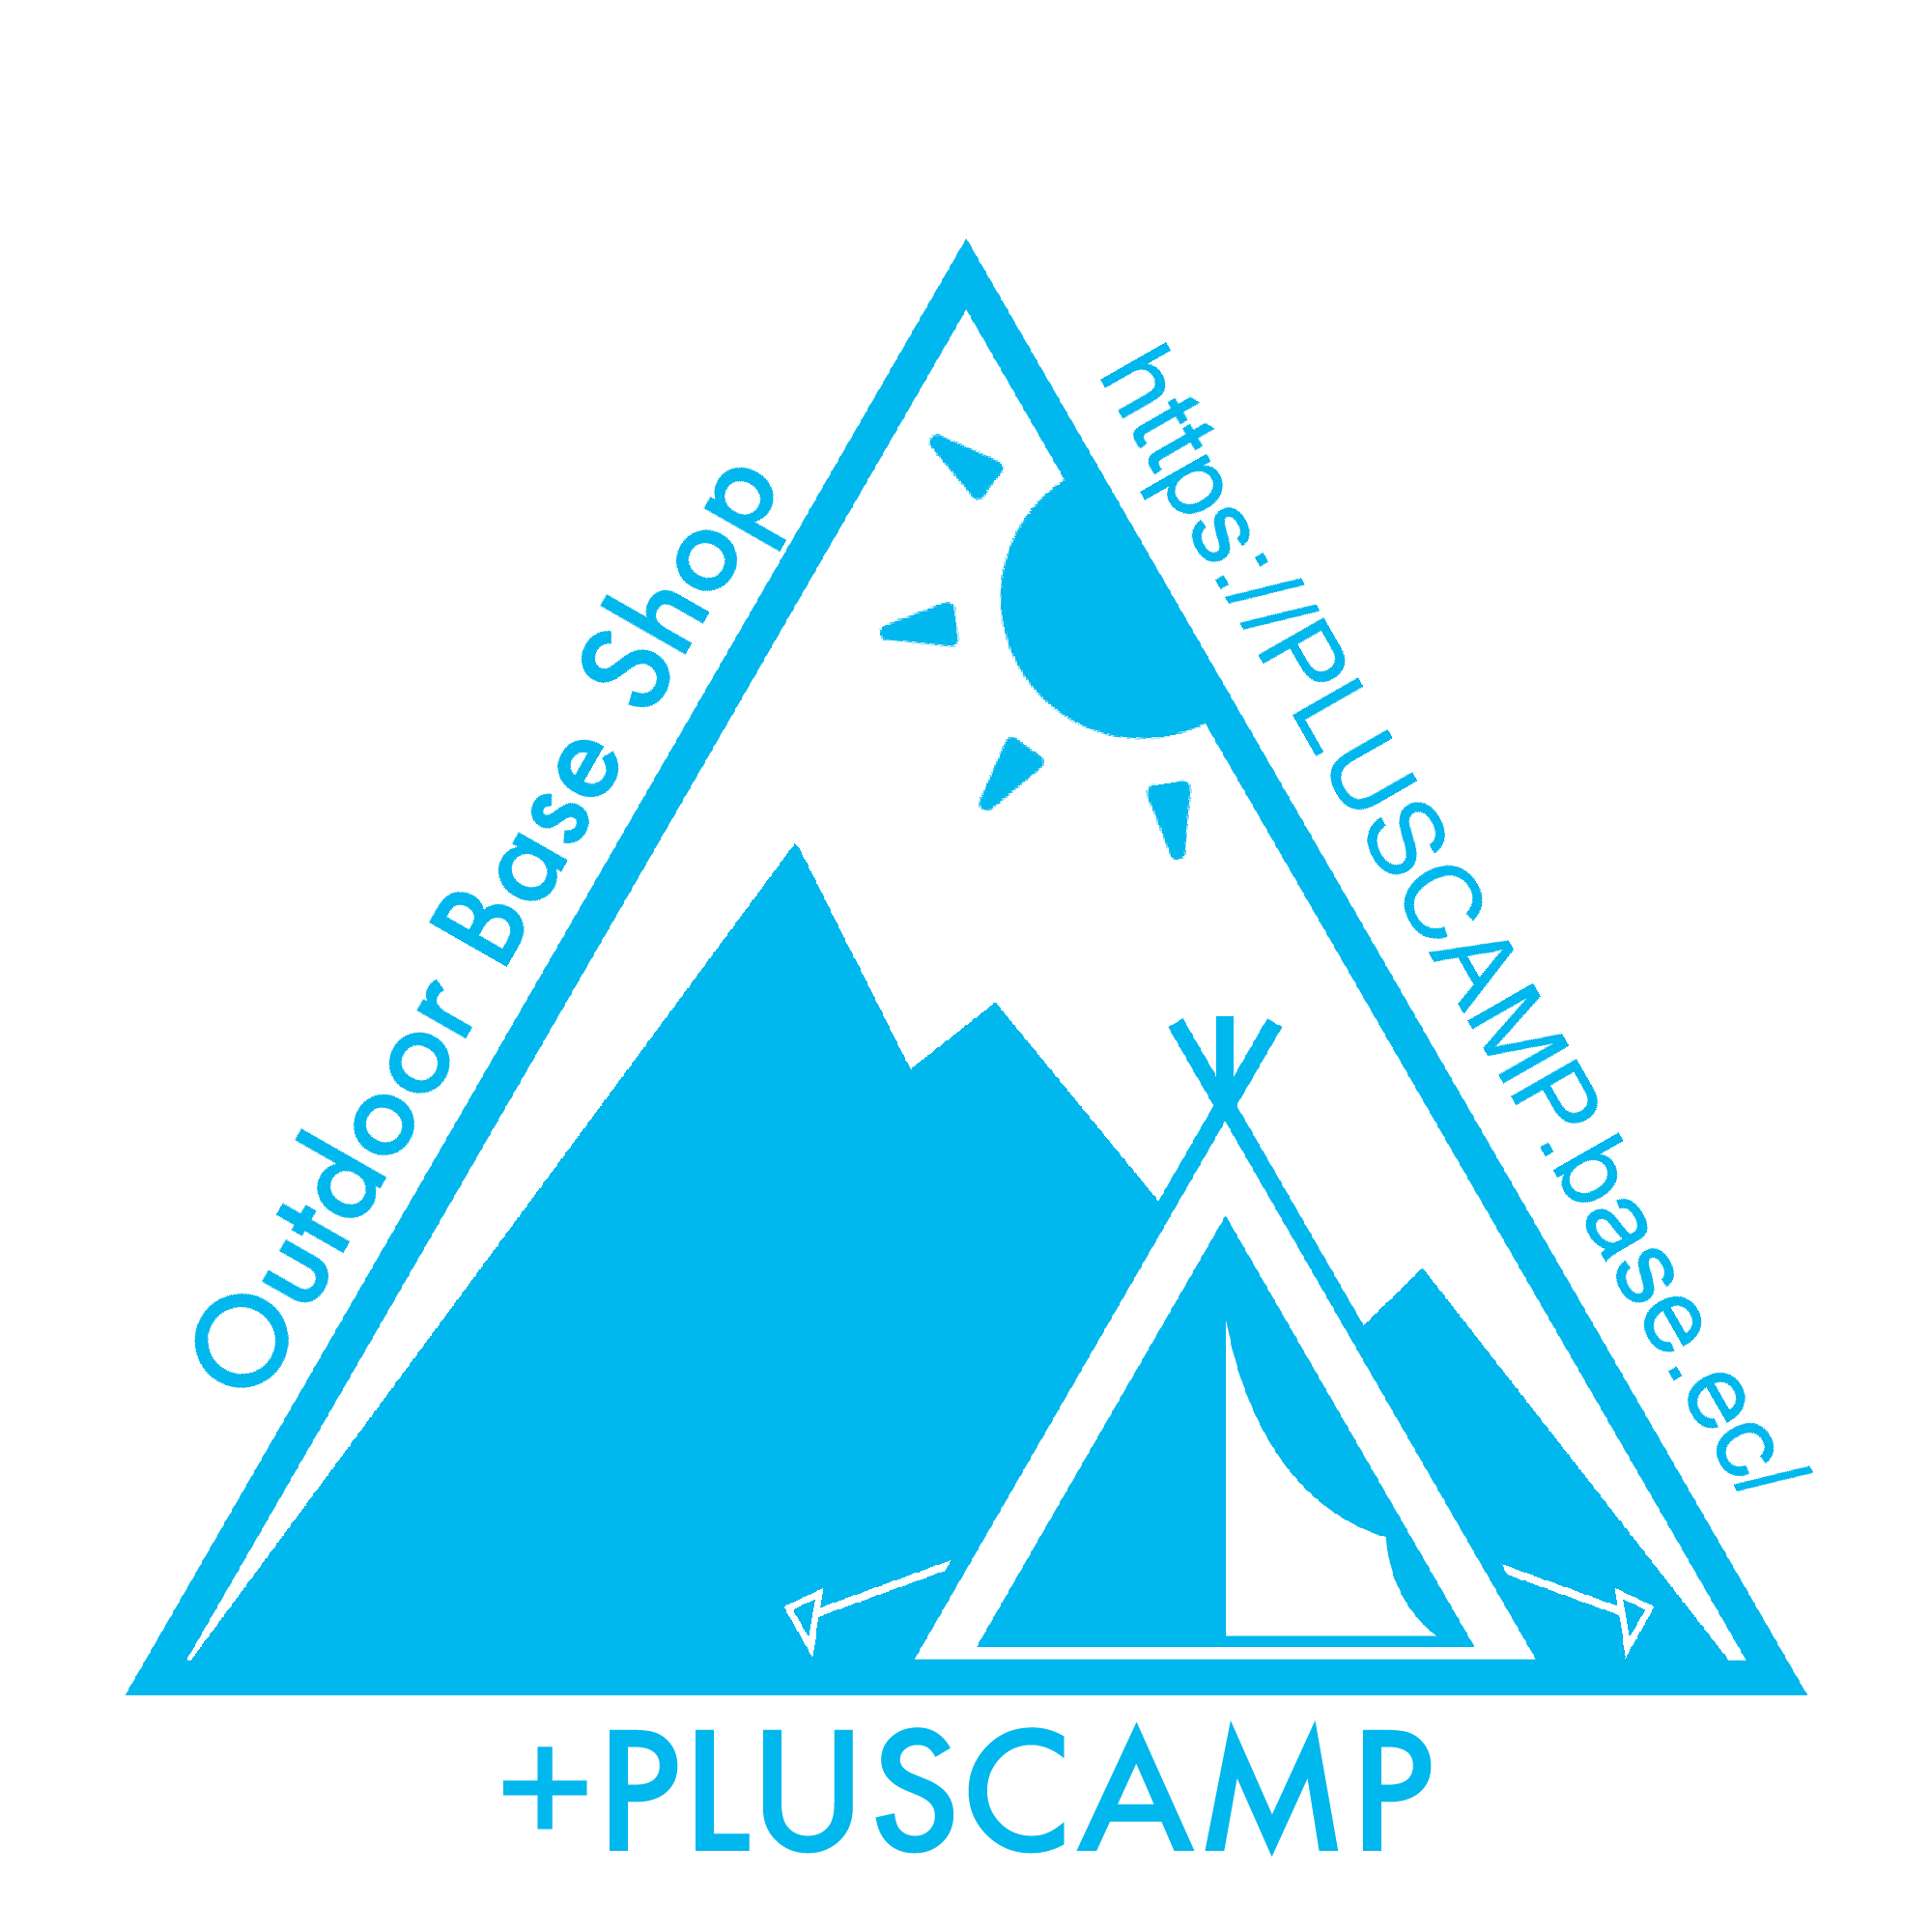 +PLUSCAMP